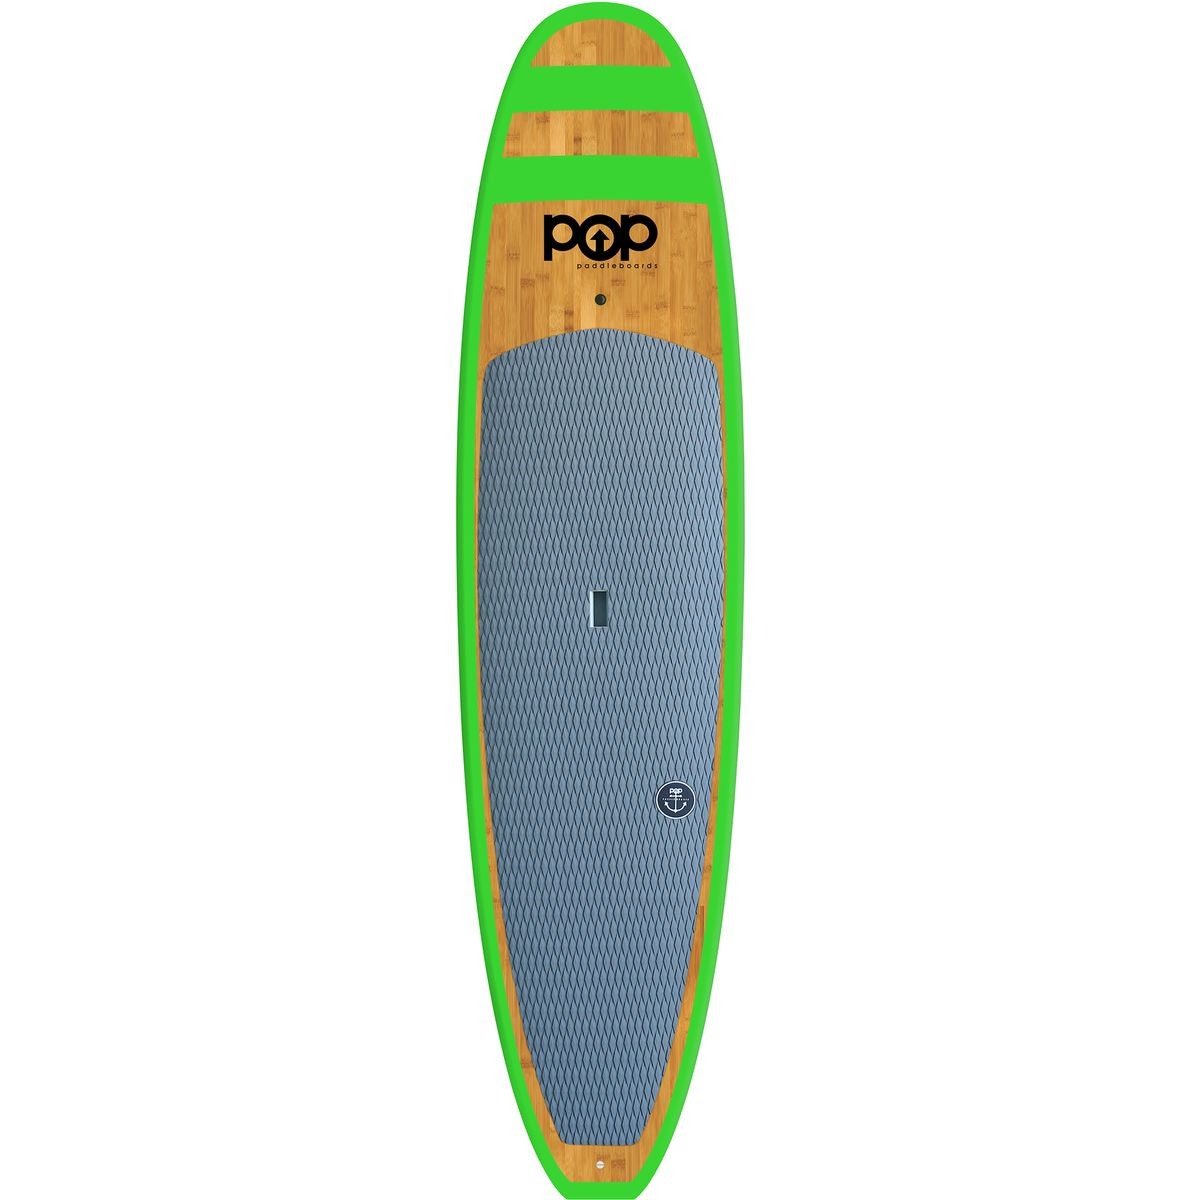 POP Paddleboards Huckleberry Stand Up Paddleboard Bright Green 11ft